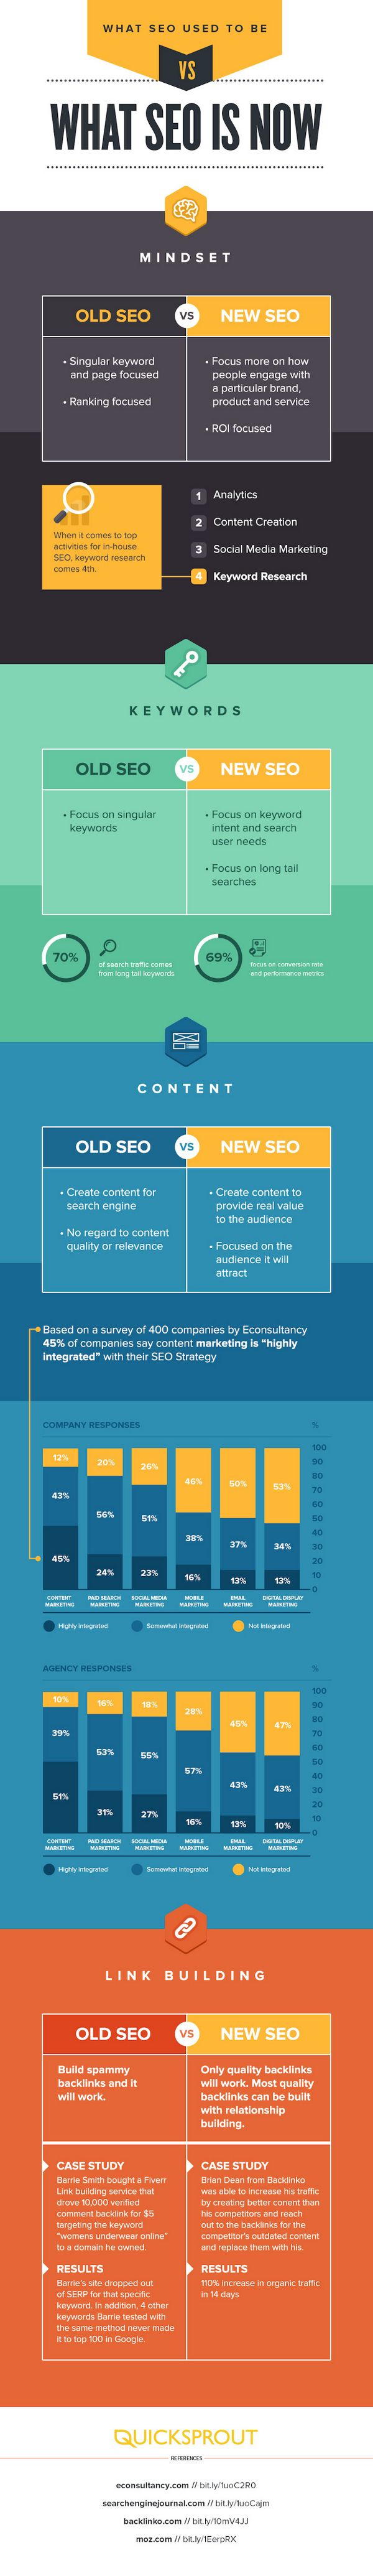 The most popular and effect SEO strategies to use for 2017 Old SEO vs. New SEO . [Infographic]